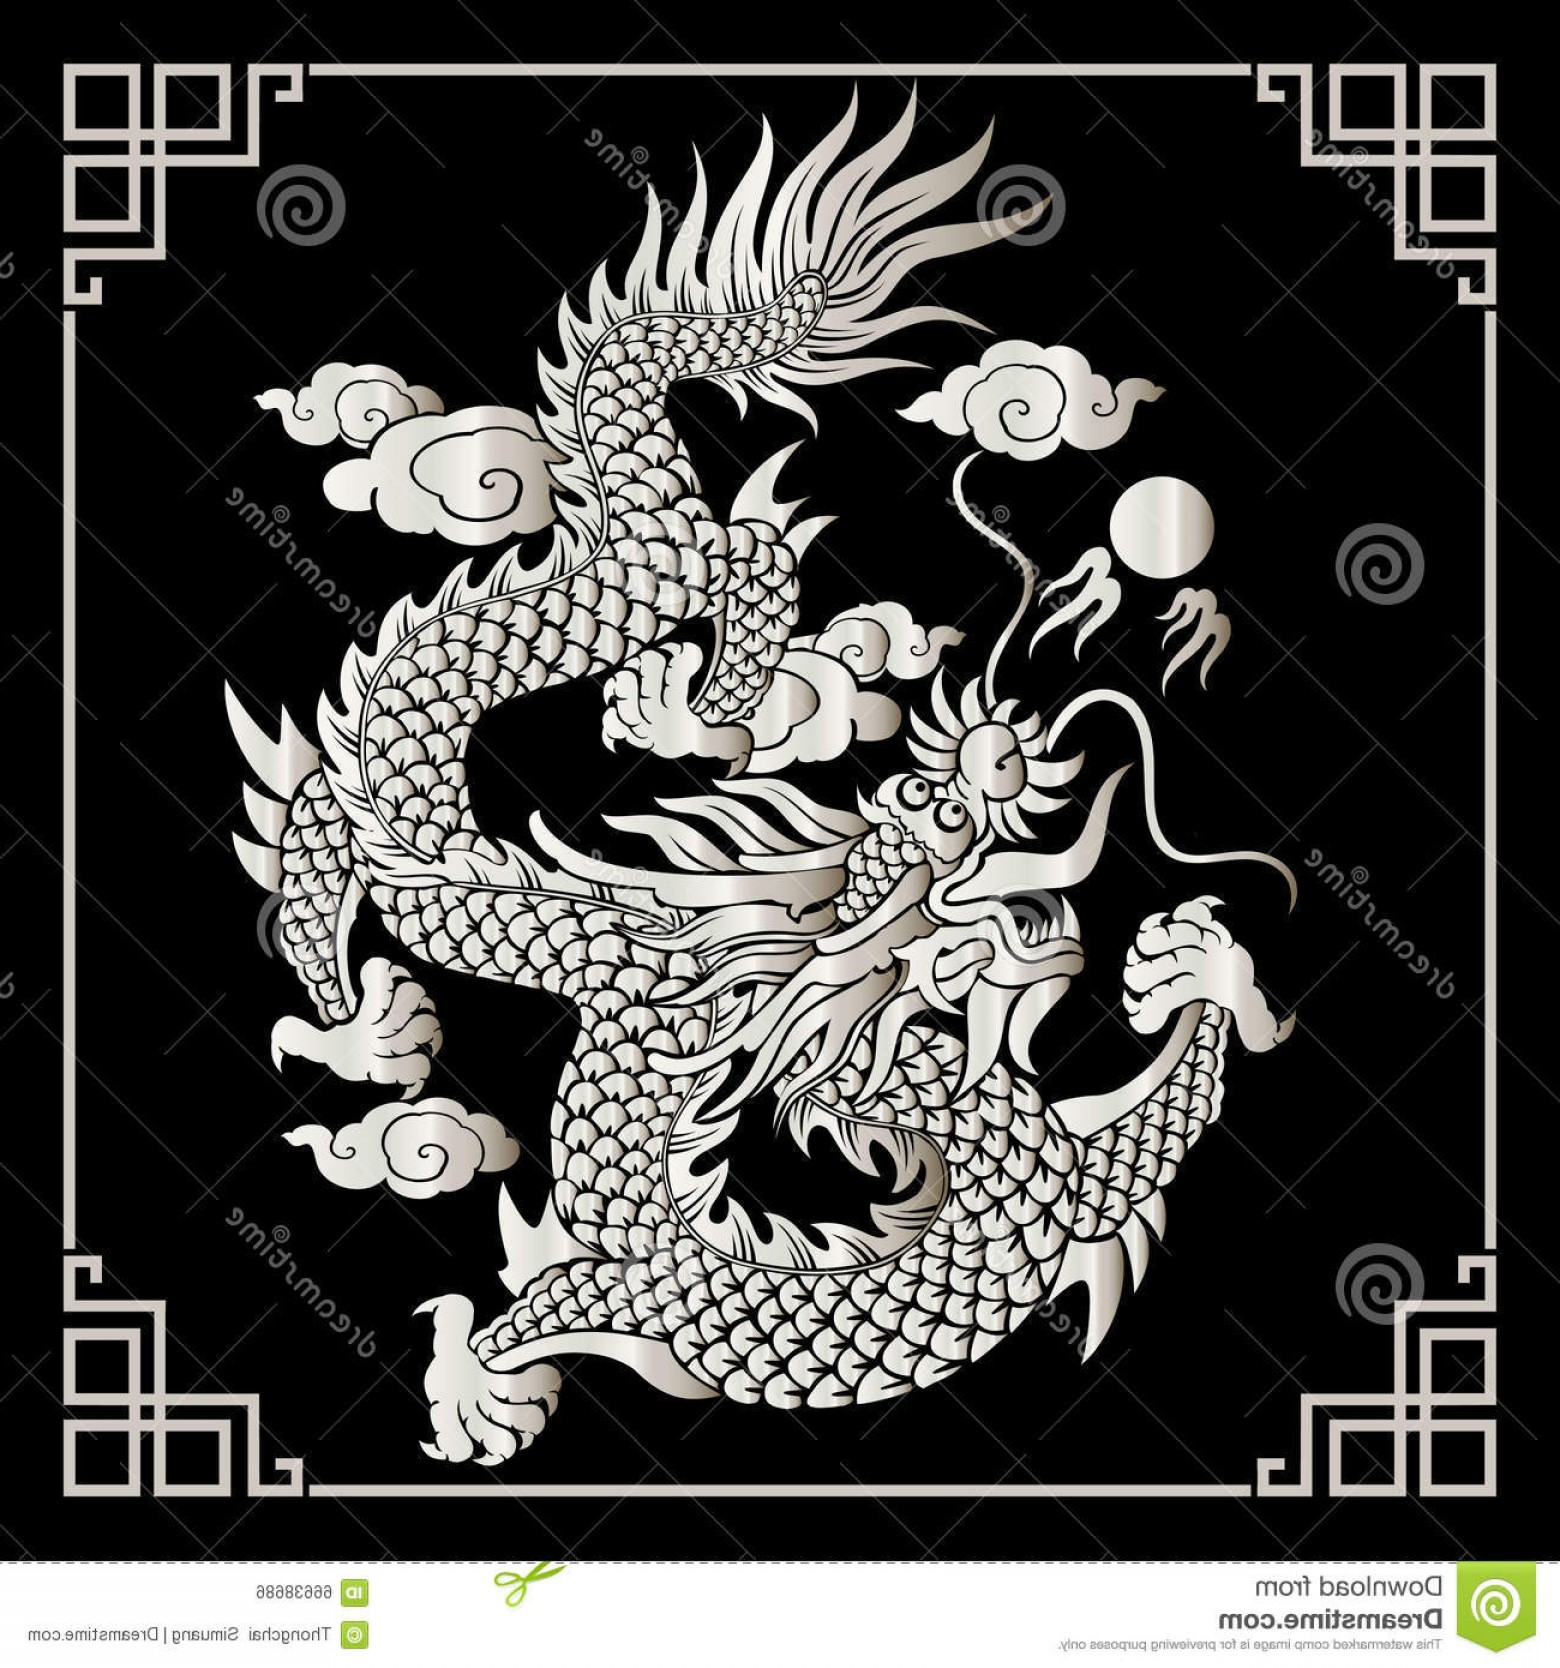 Oriental Dragon Vector: Stock Illustration Vector Vintage Chinese Dragon Engraving Retro Ornament Pattern Antique Rococo Style Decorative Design Image